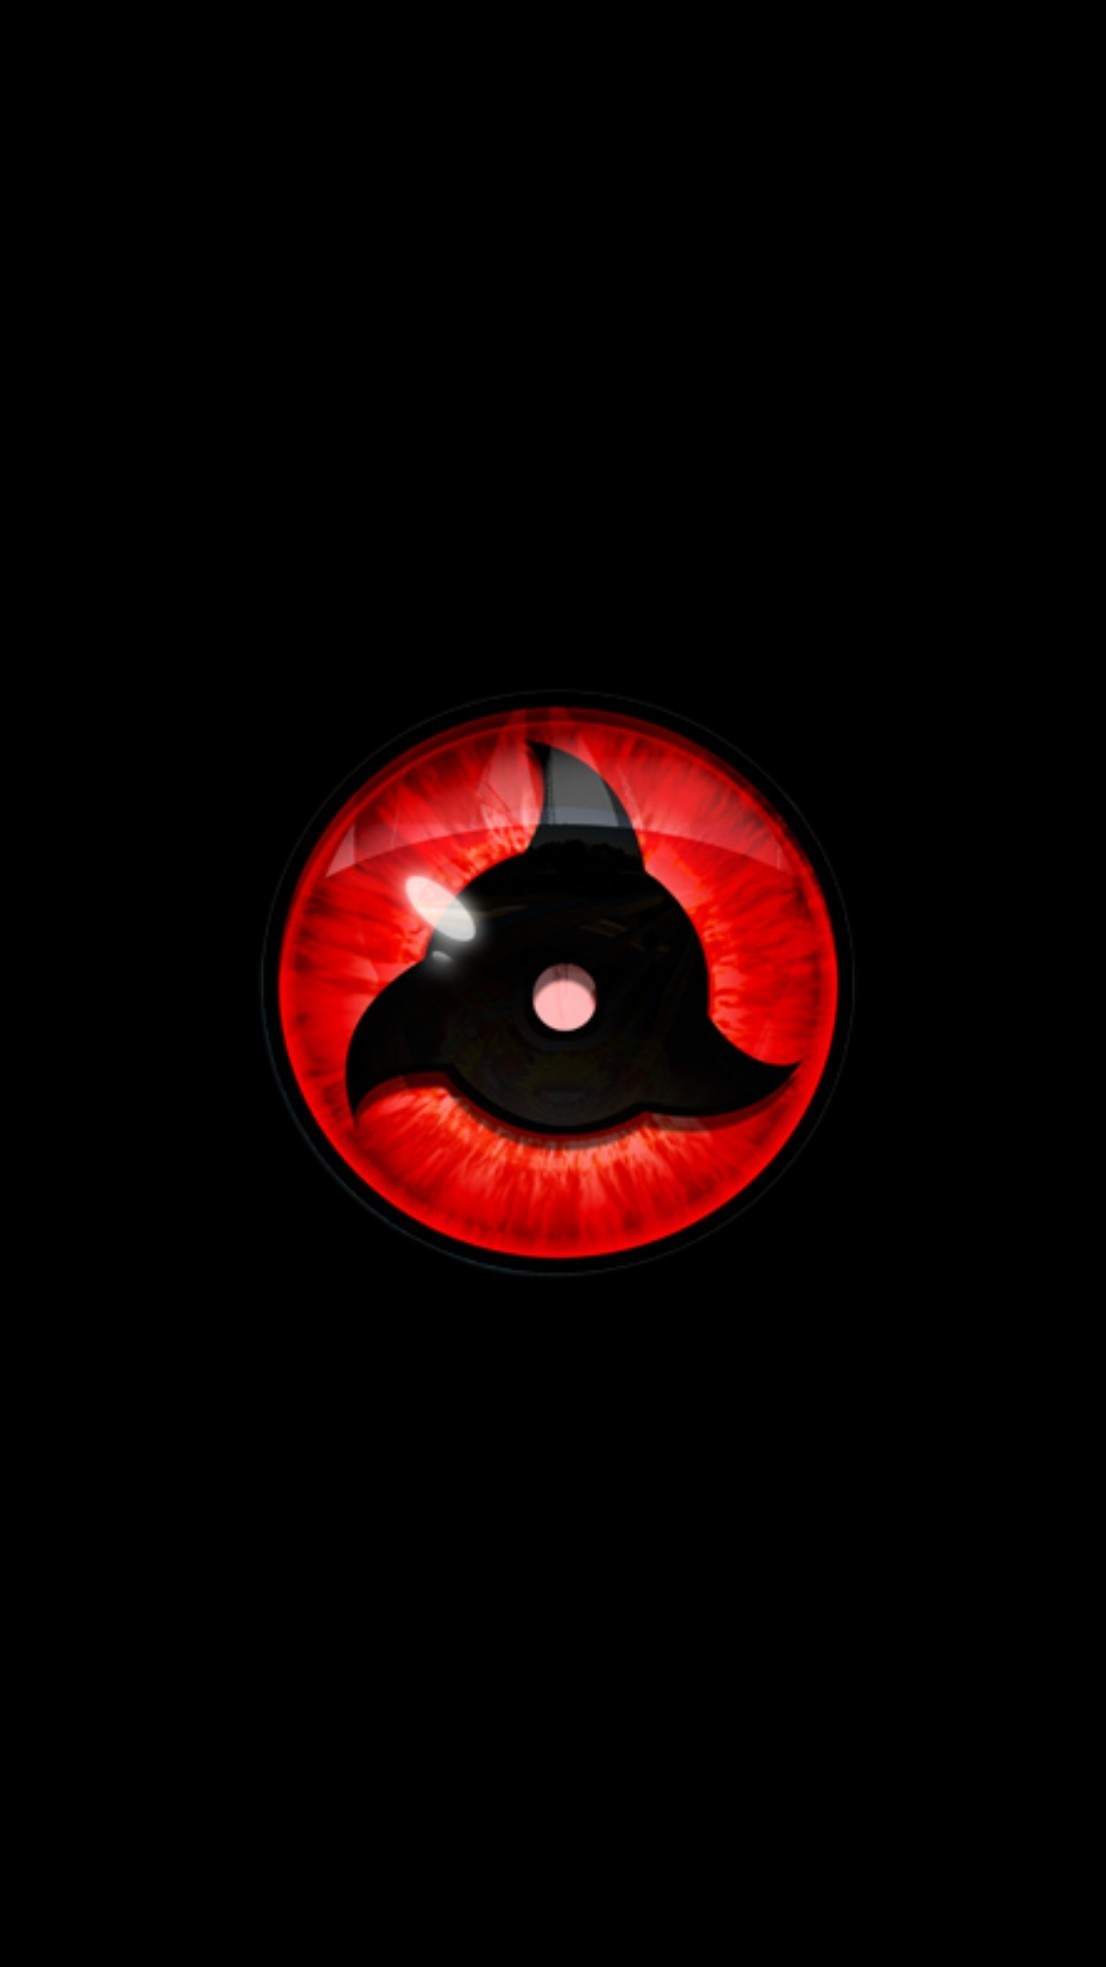 Wallpaper Sasuke Mangekyou Sharingan Posted By Ryan Johnson